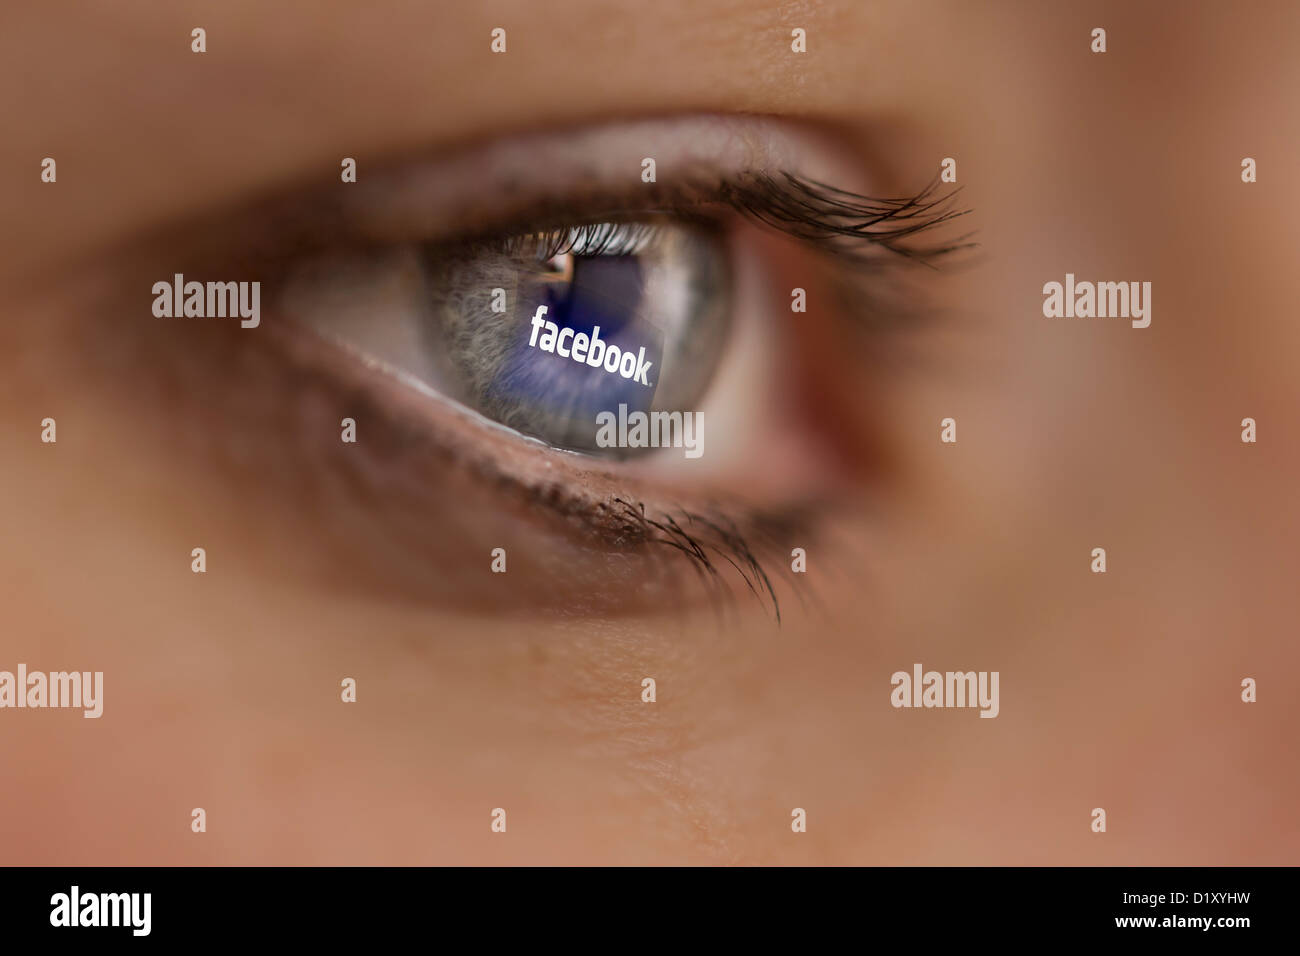 Woman looking at the Internet site of the online network facebook. - Stock Image